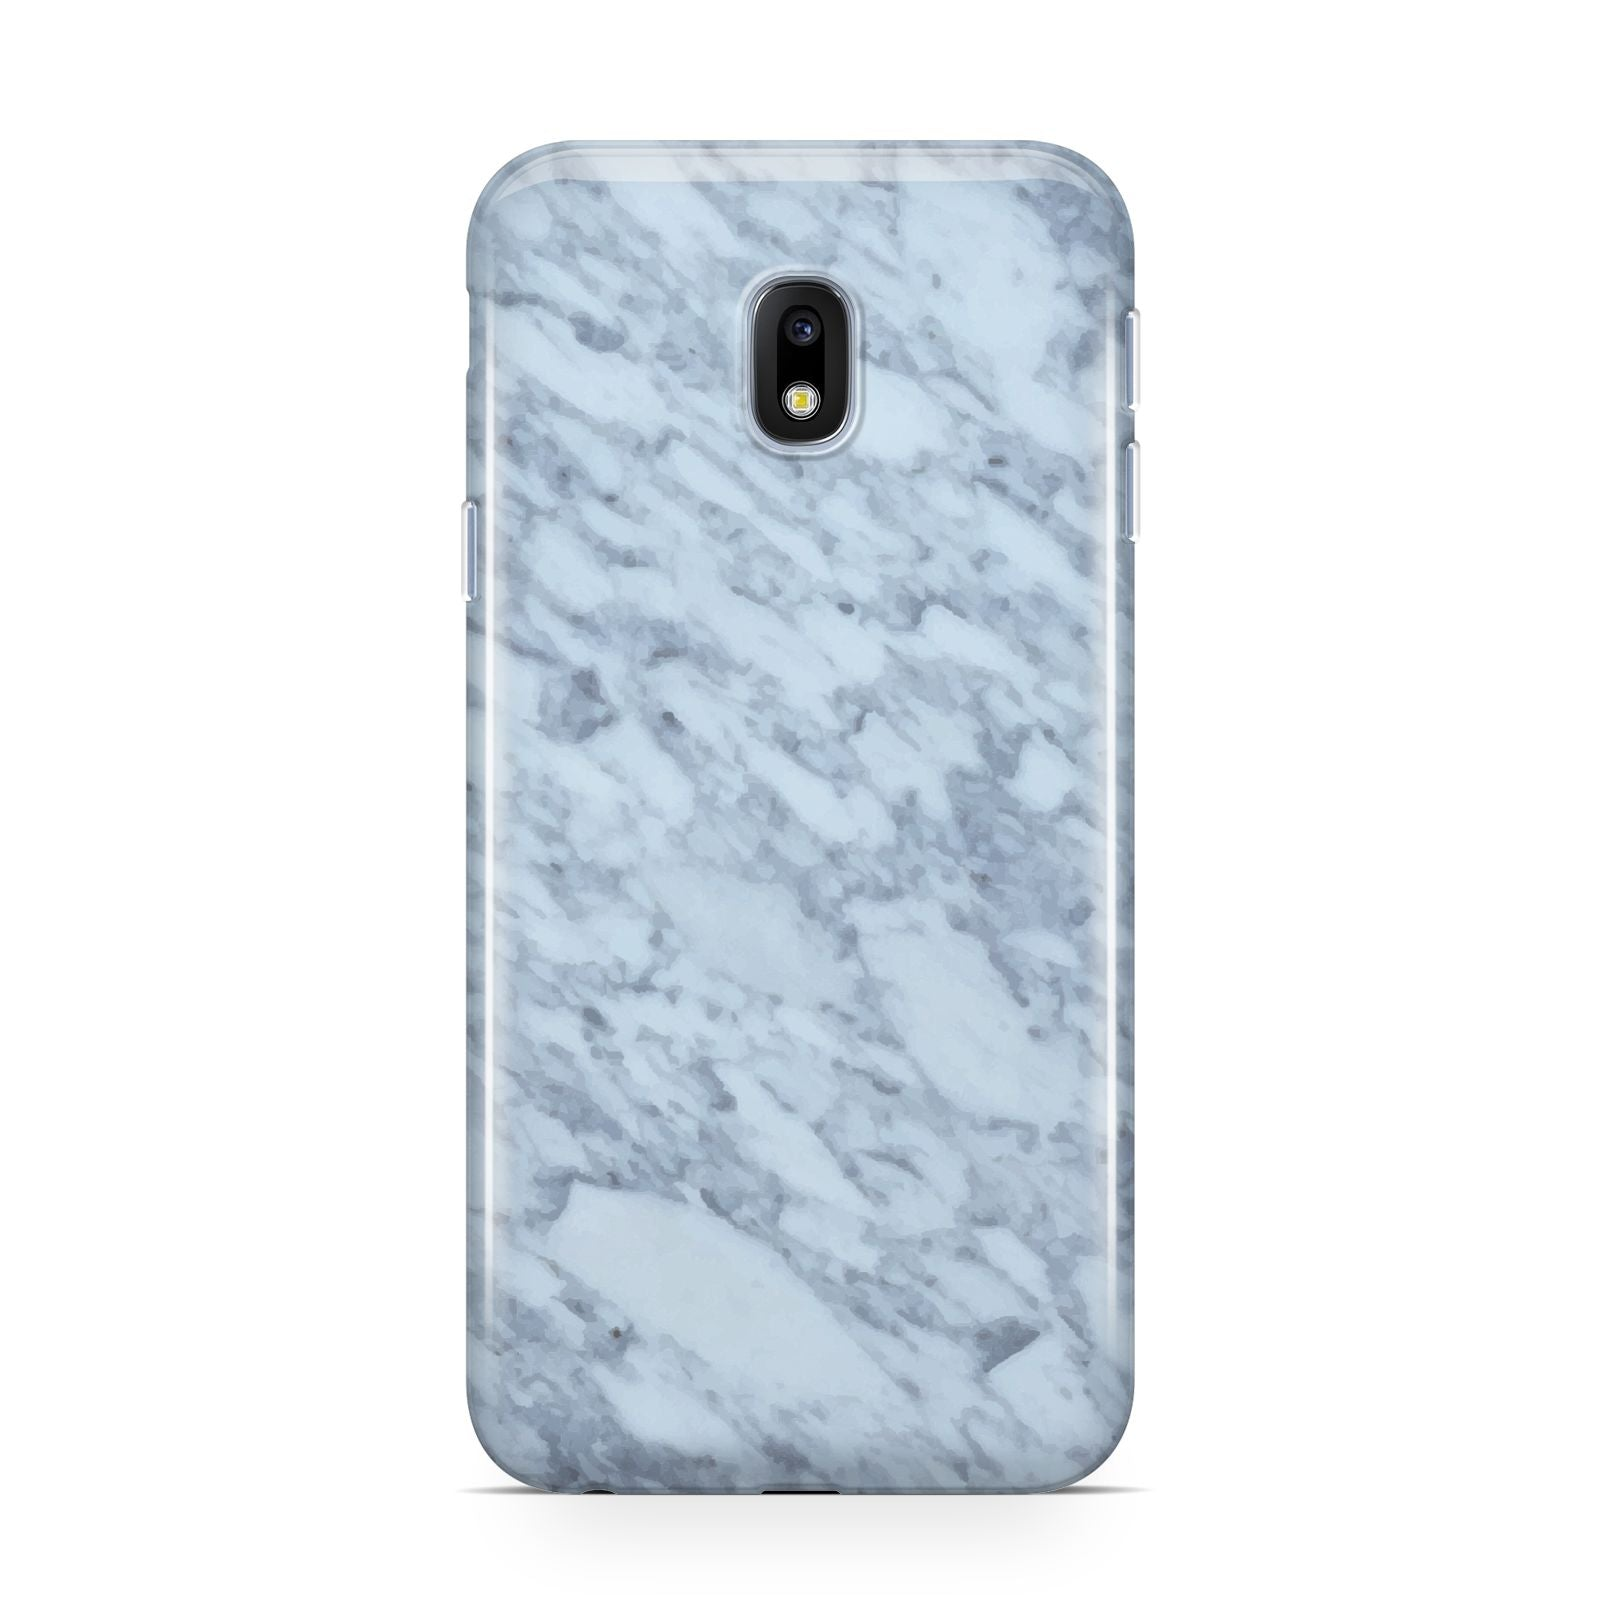 Faux Marble Grey 2 Samsung Galaxy J3 2017 Case